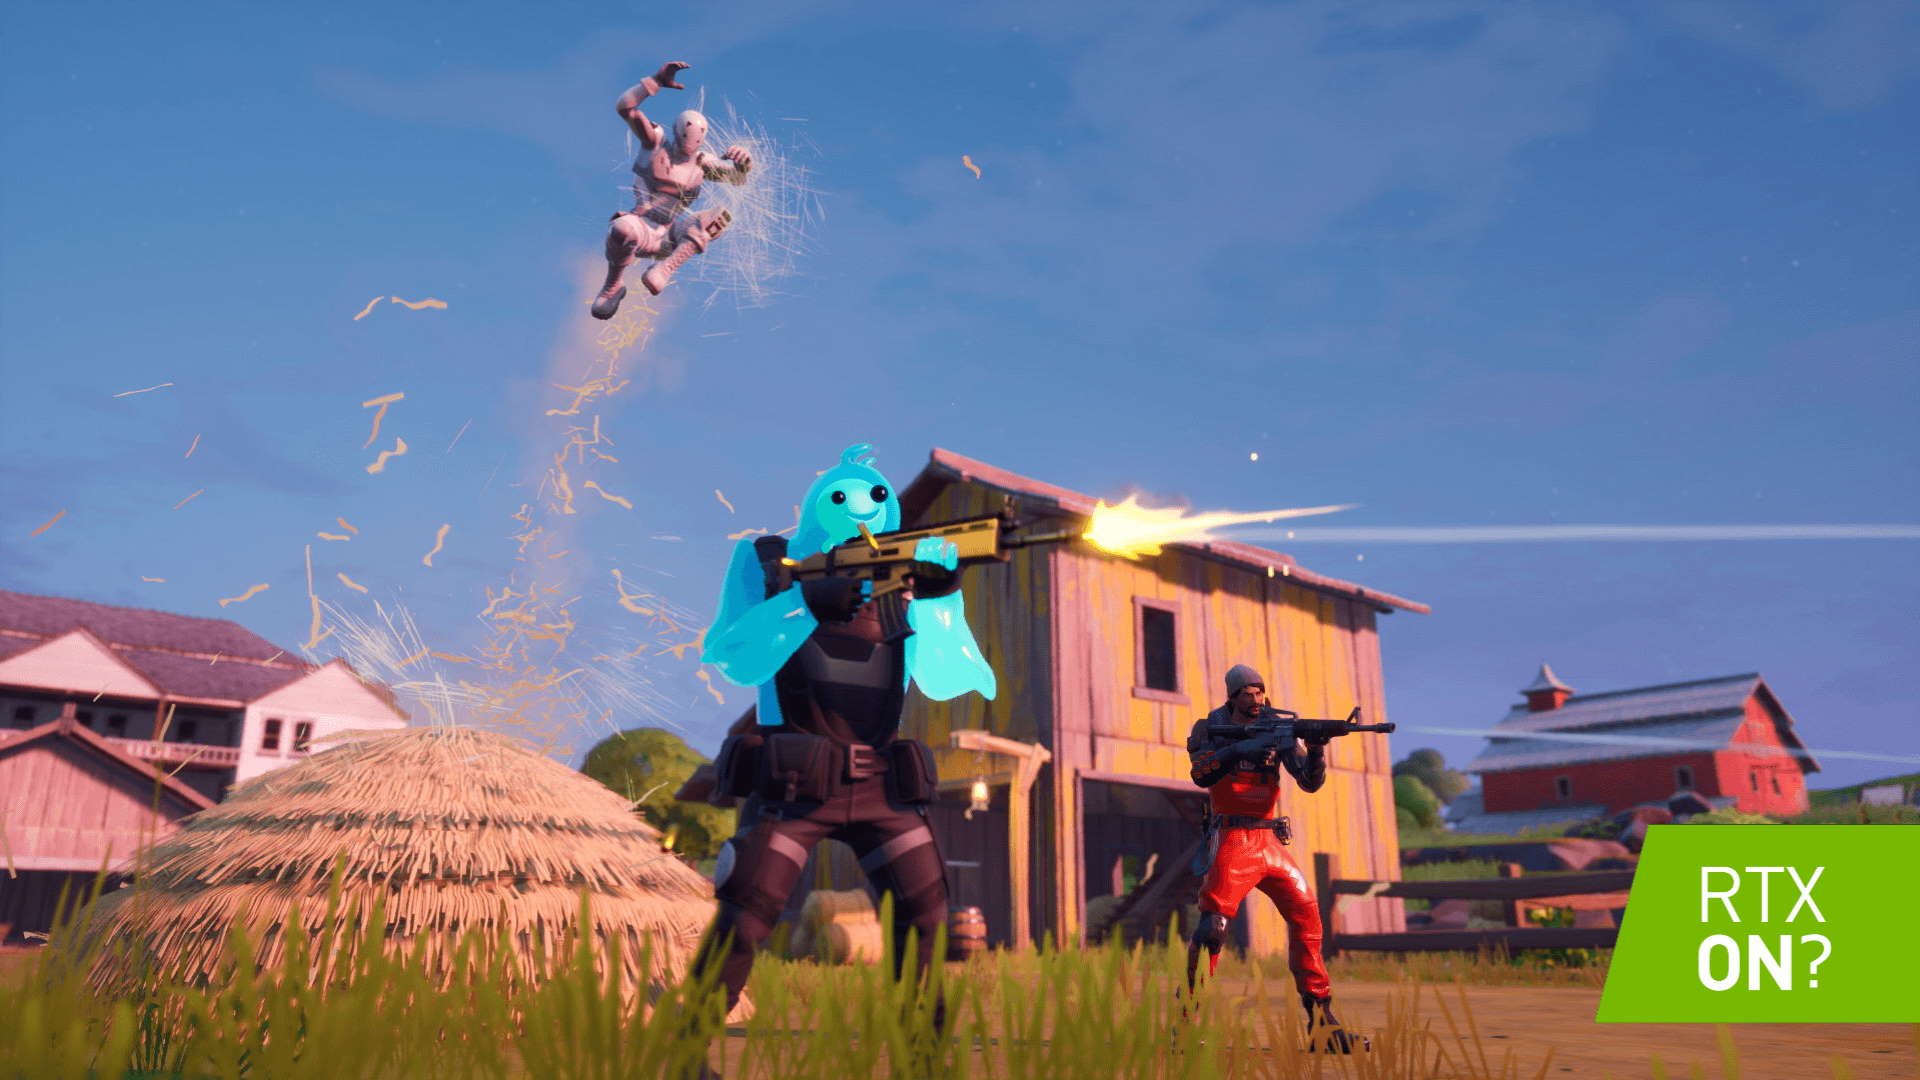 Is ray tracing coming to Fortnite on PC? Maybe for a future Xbox Scarlett launch…